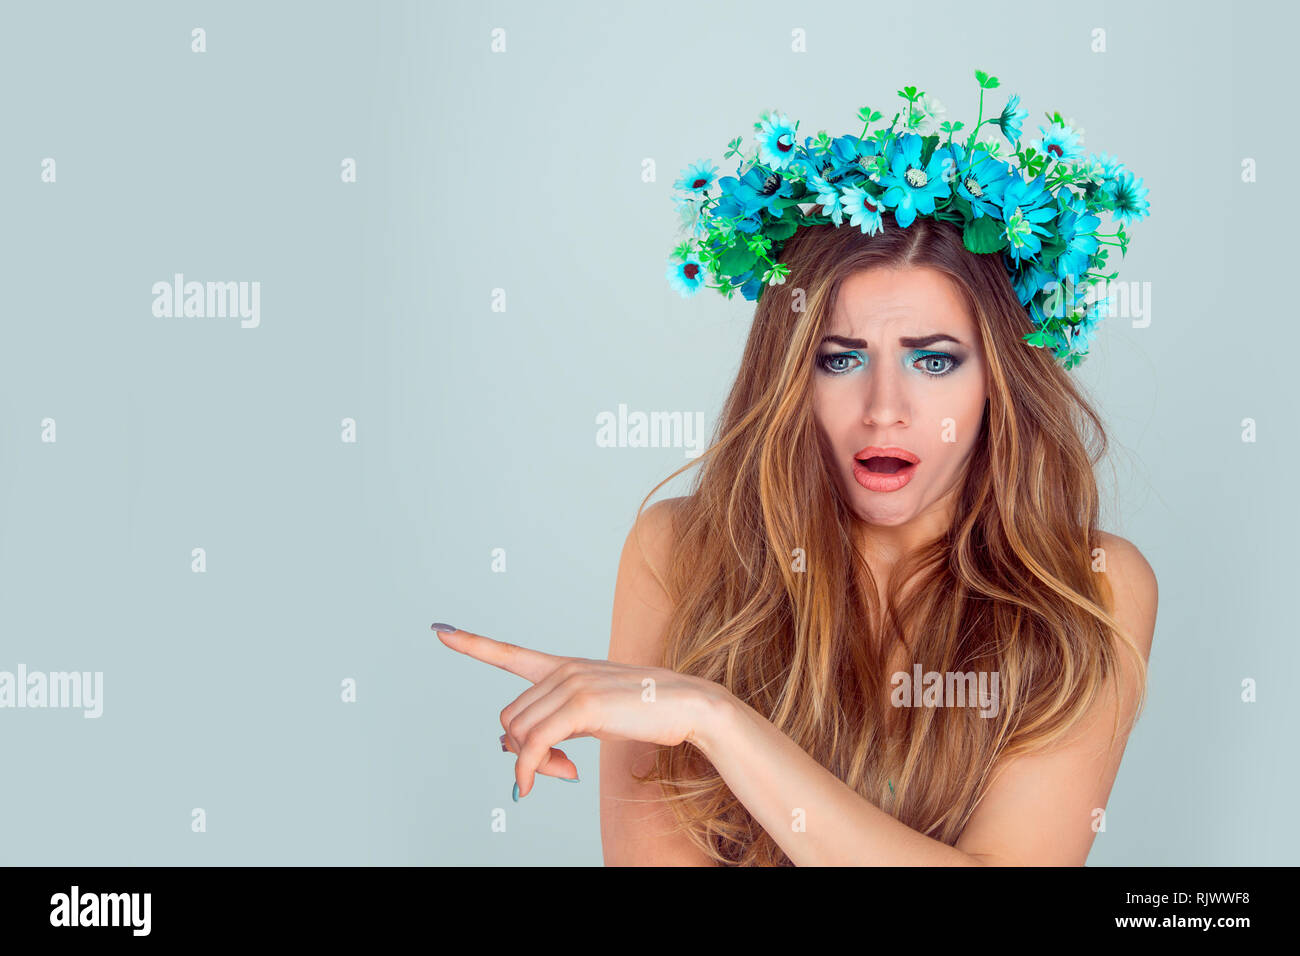 Stunned woman with floral headband pointing with index finger to copyspace - Stock Image